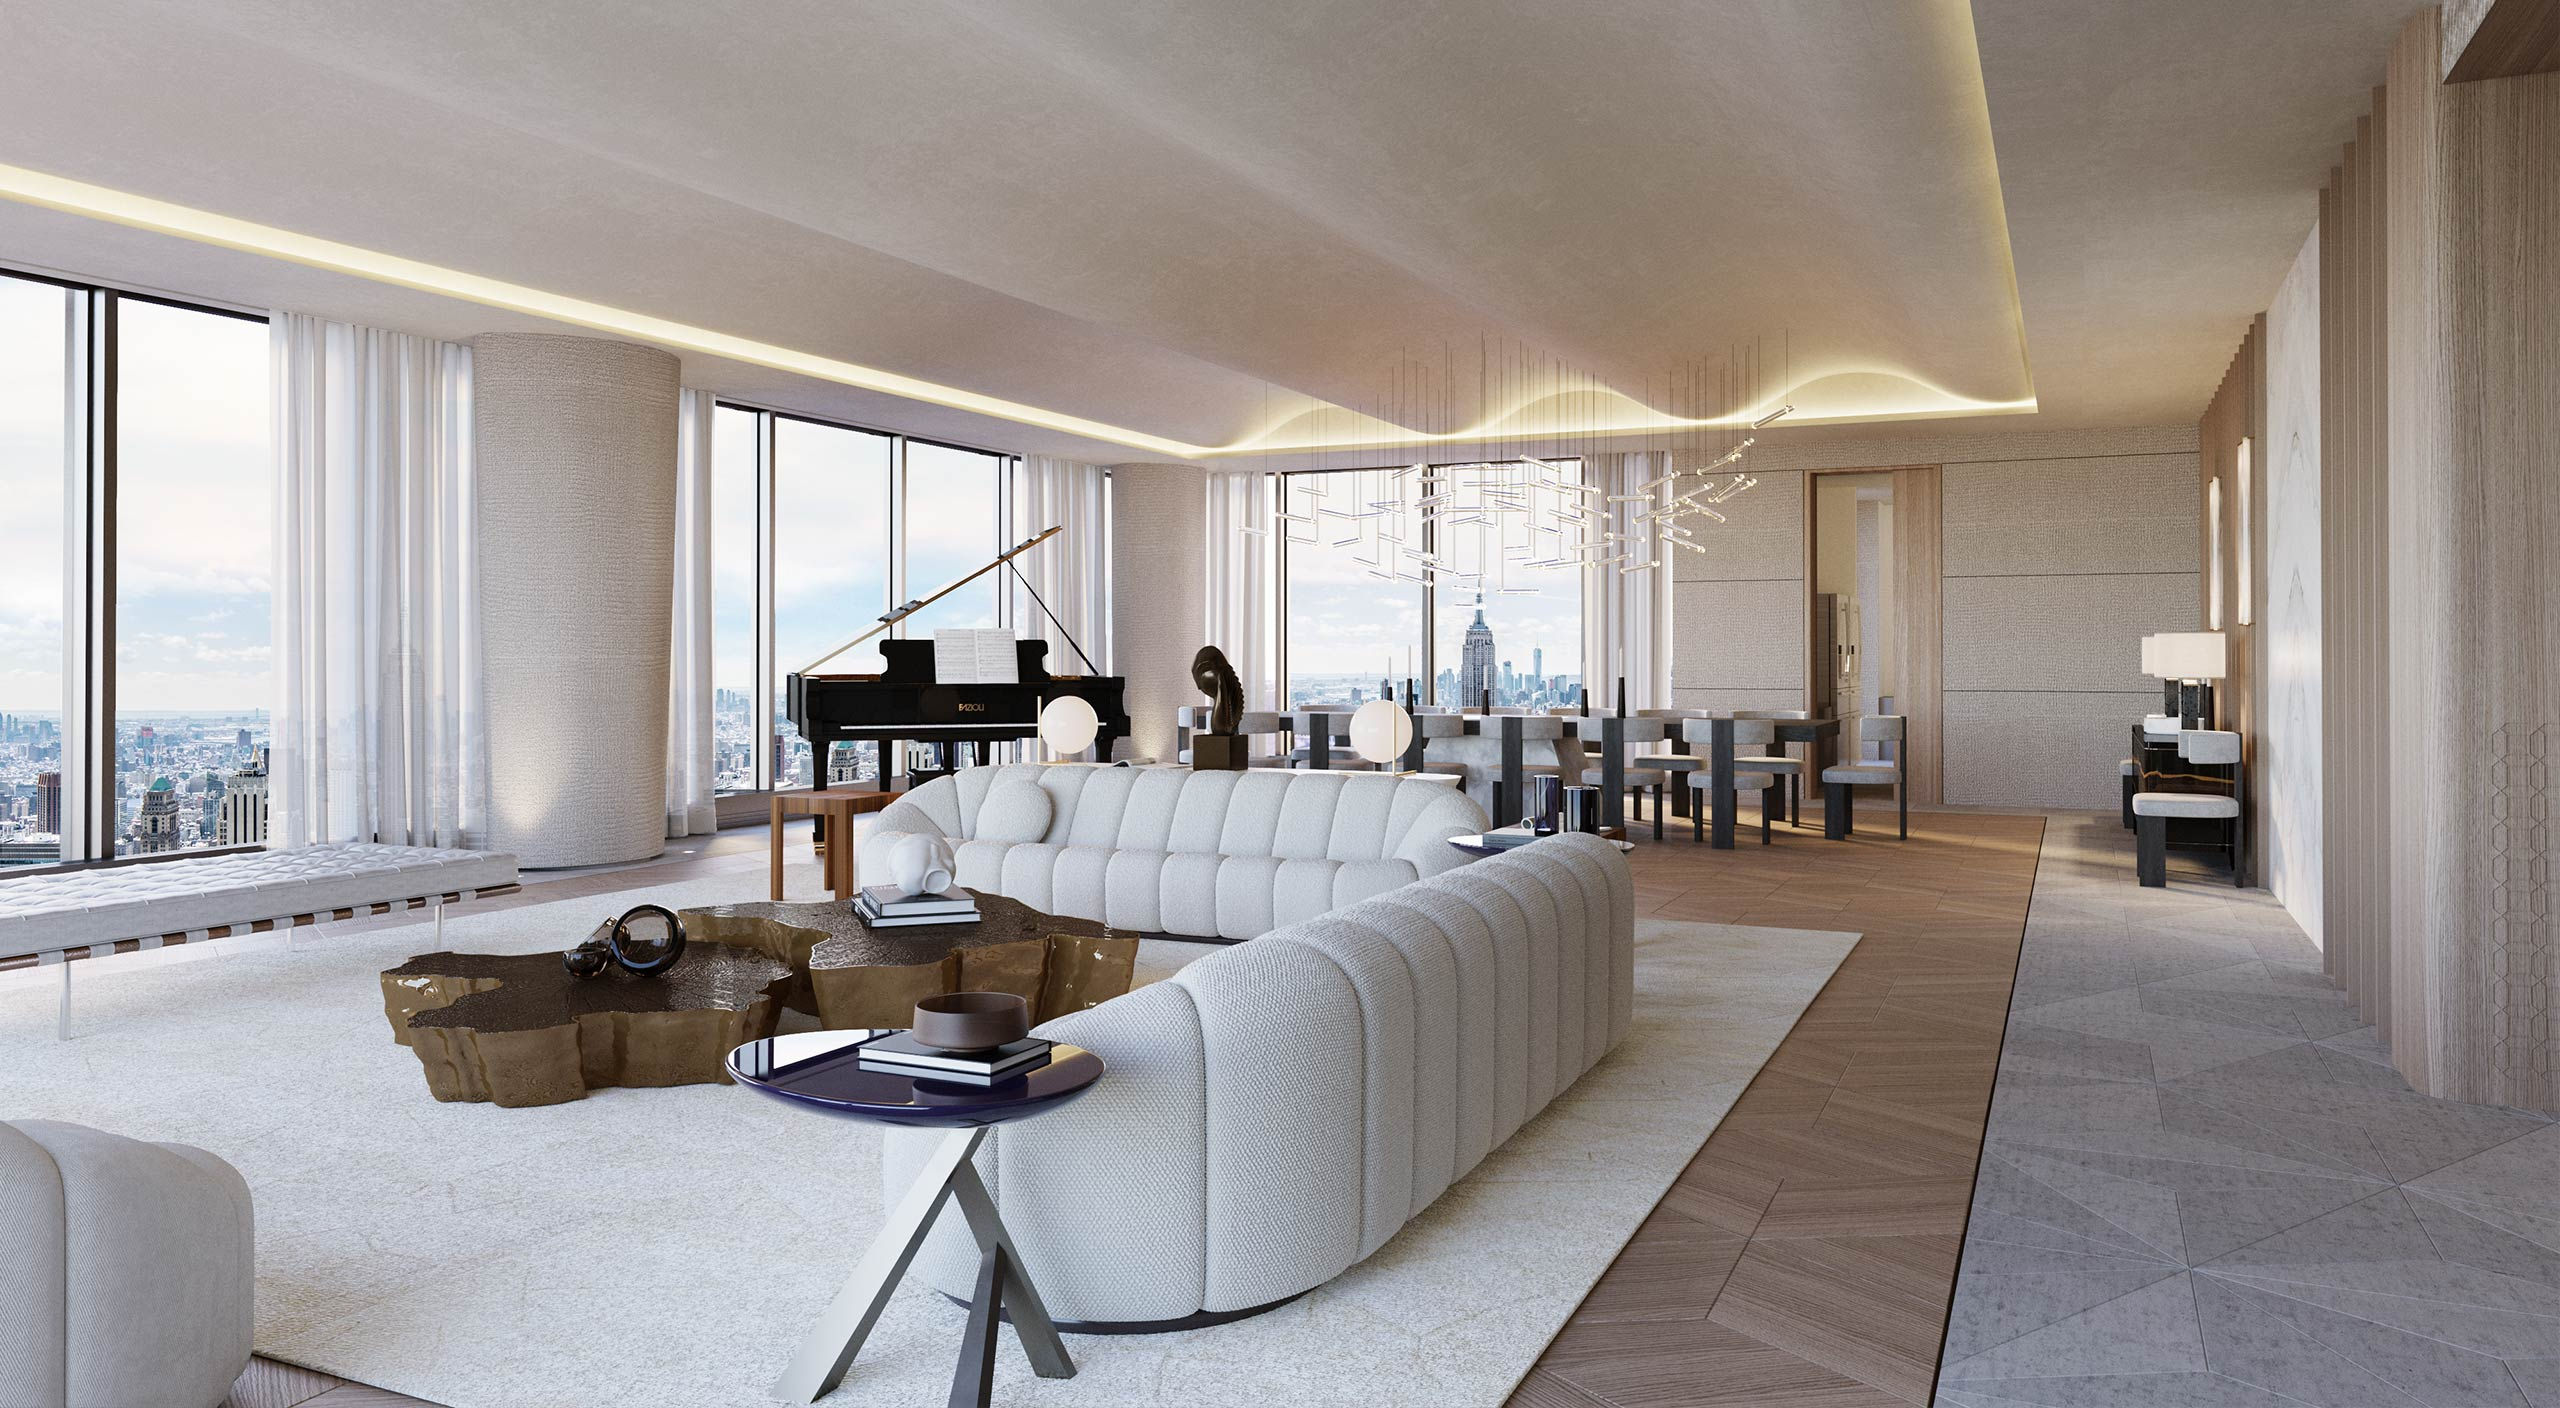 Open plan Sitting and Dining Room of the Central Park Tower in New York, a luxury design project by Smallbone